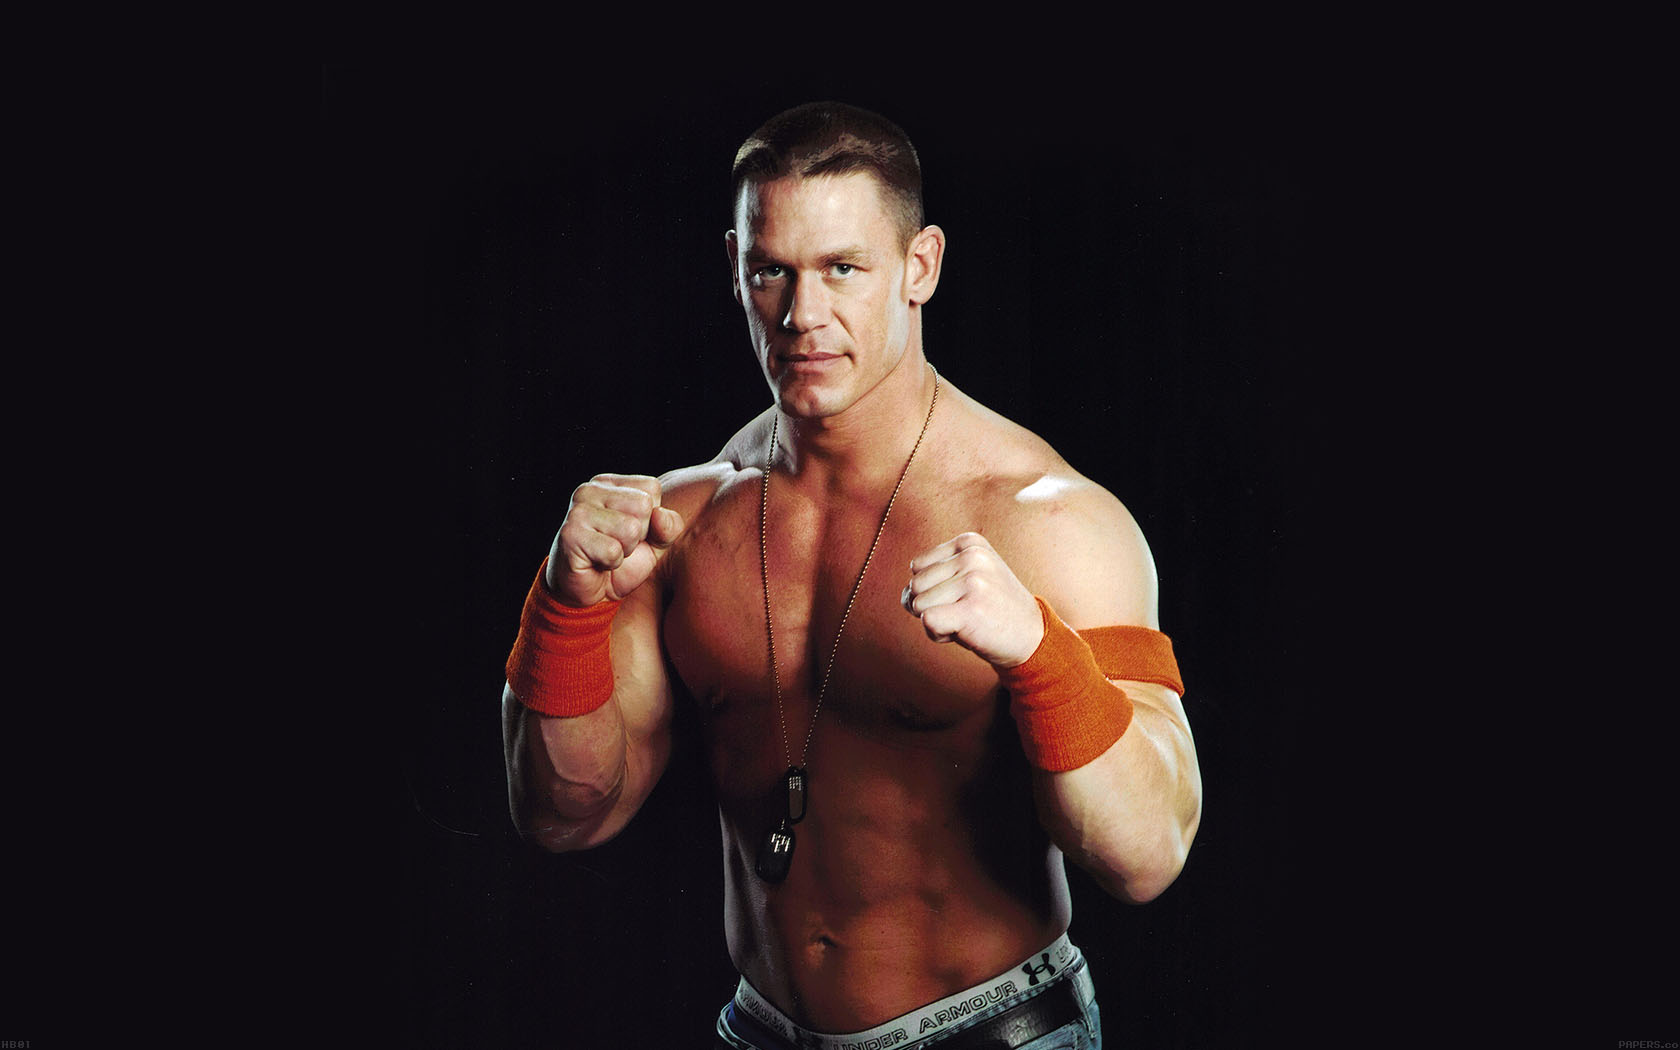 Fall Wallpaper Hd 1920x1080 Hb01 Wallpaper John Cena Wwe Man Papers Co